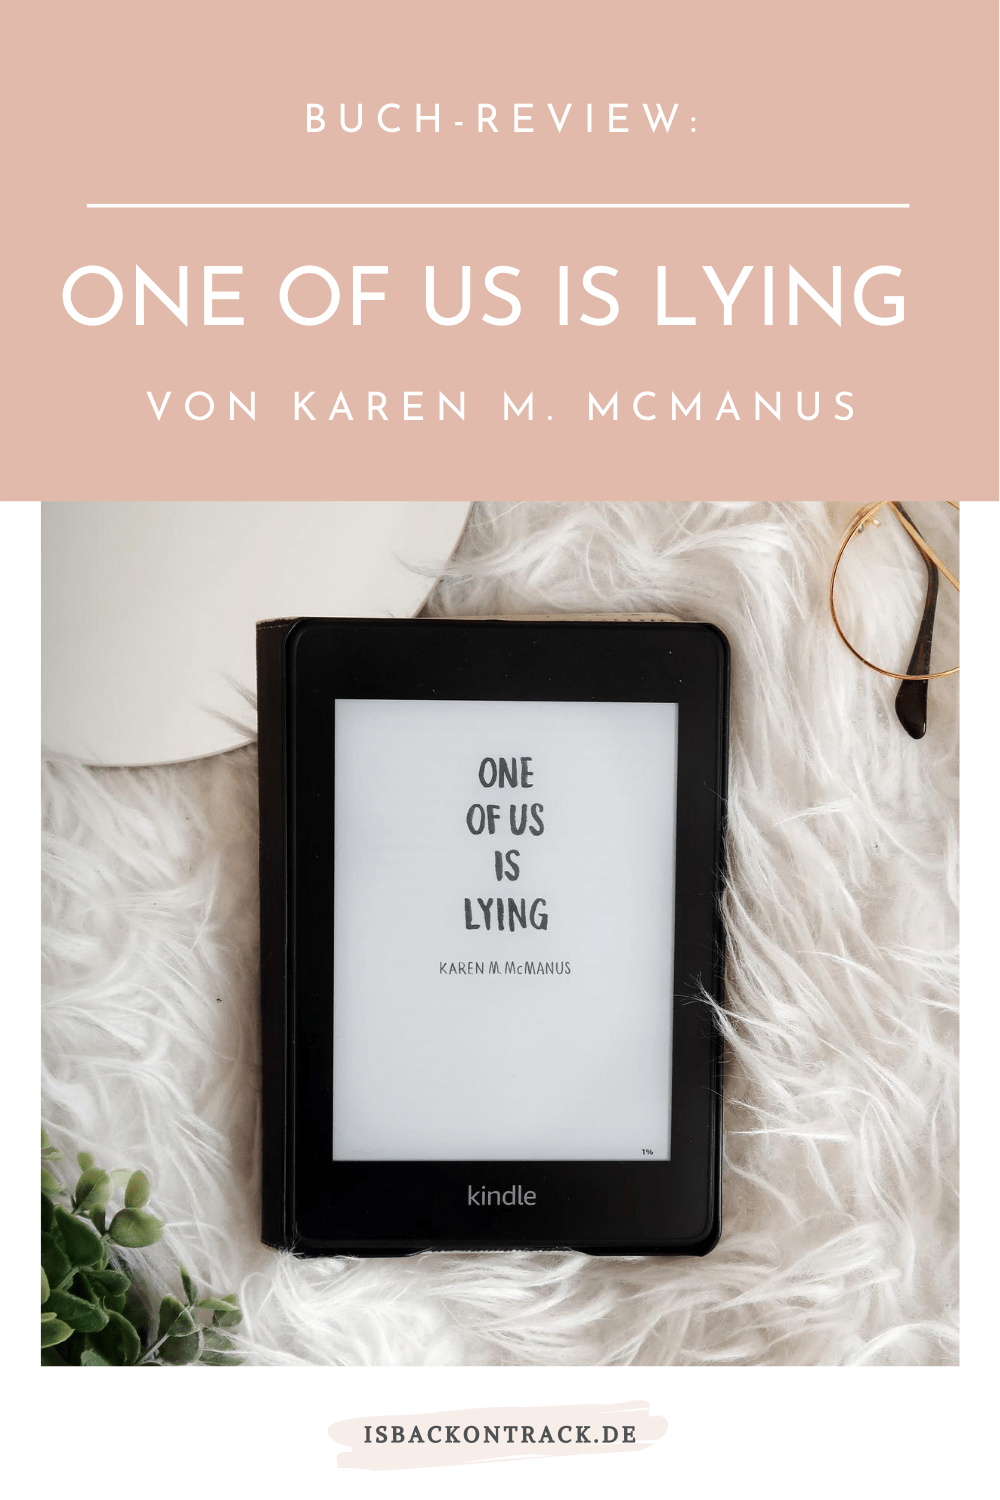 Buch Review: One of us is lying